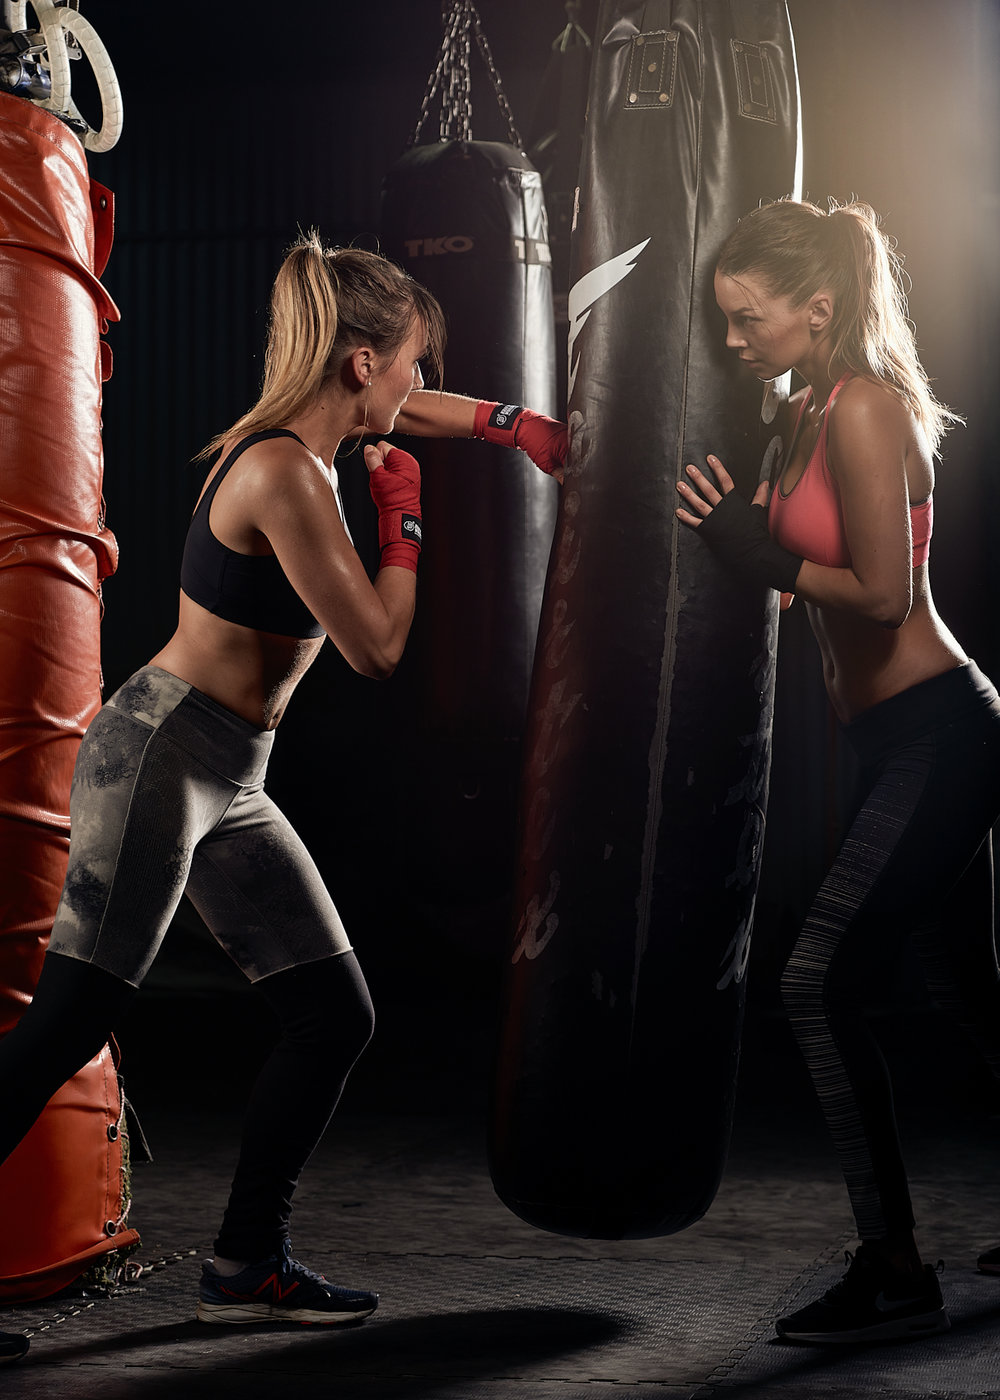 Boxing girls sport photoshoot in Vancouver 1.jpg